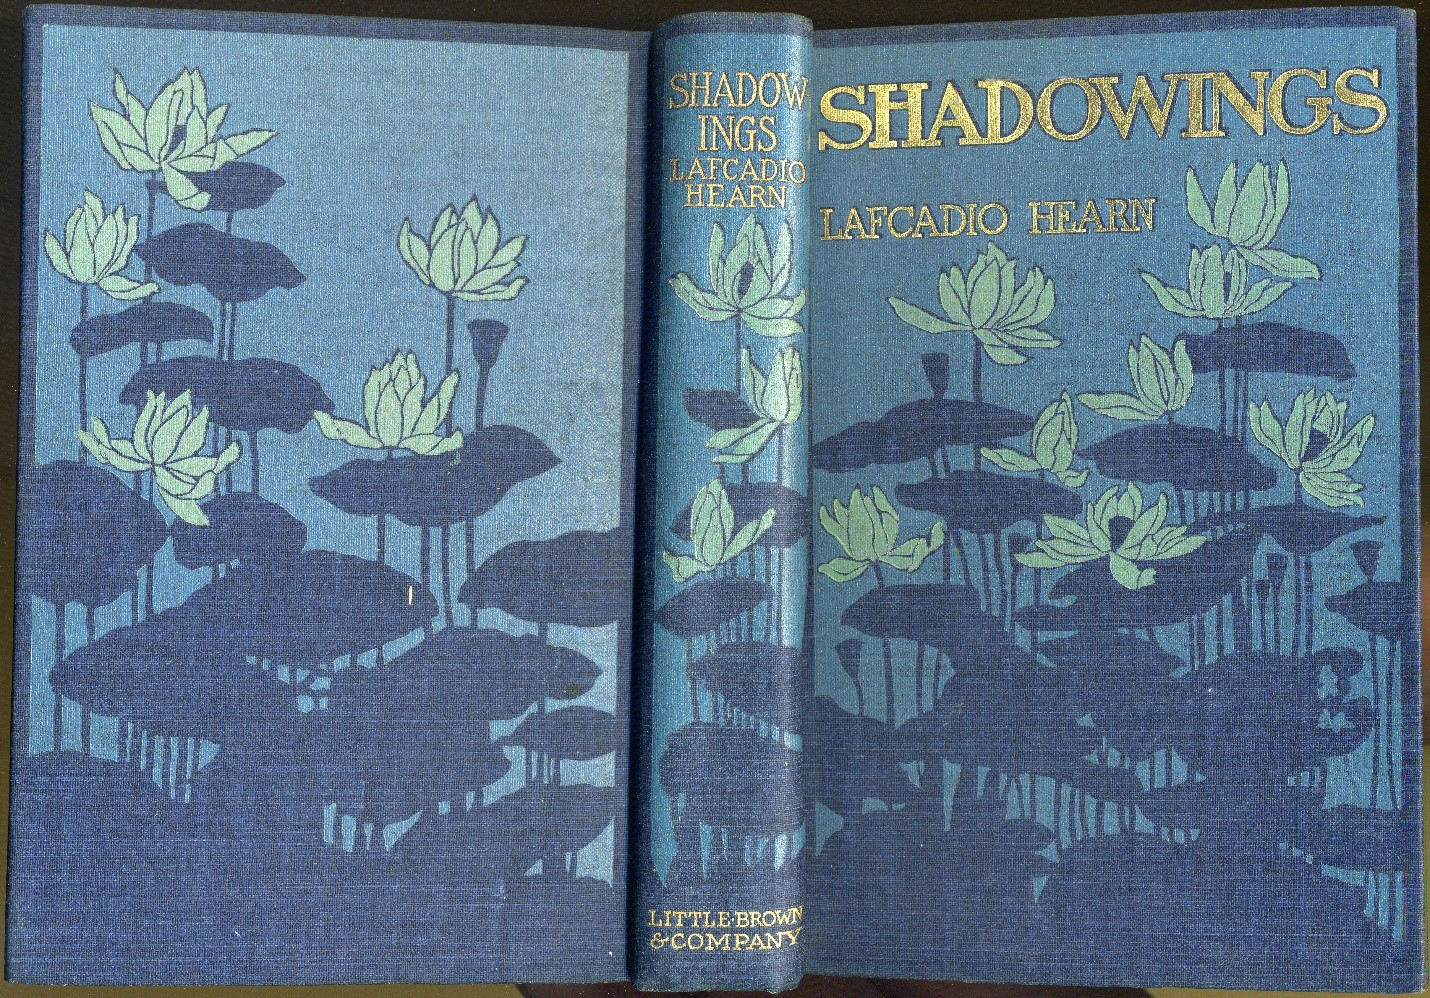 Front and back covers and spine of Shadowings book, with lotus flower motif